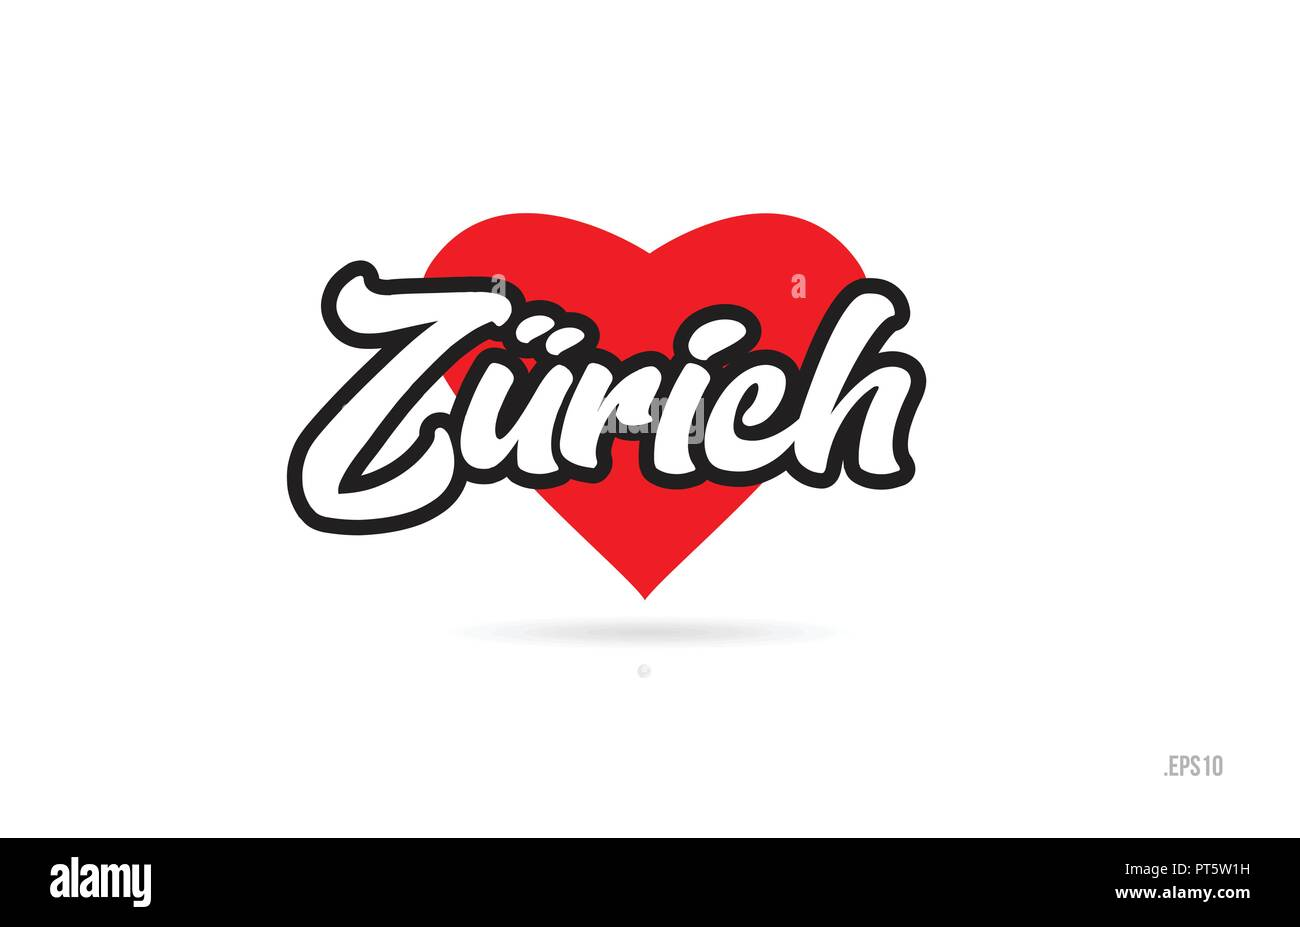 zurich city text design with red heart typographic icon design suitable for touristic promotion - Stock Vector